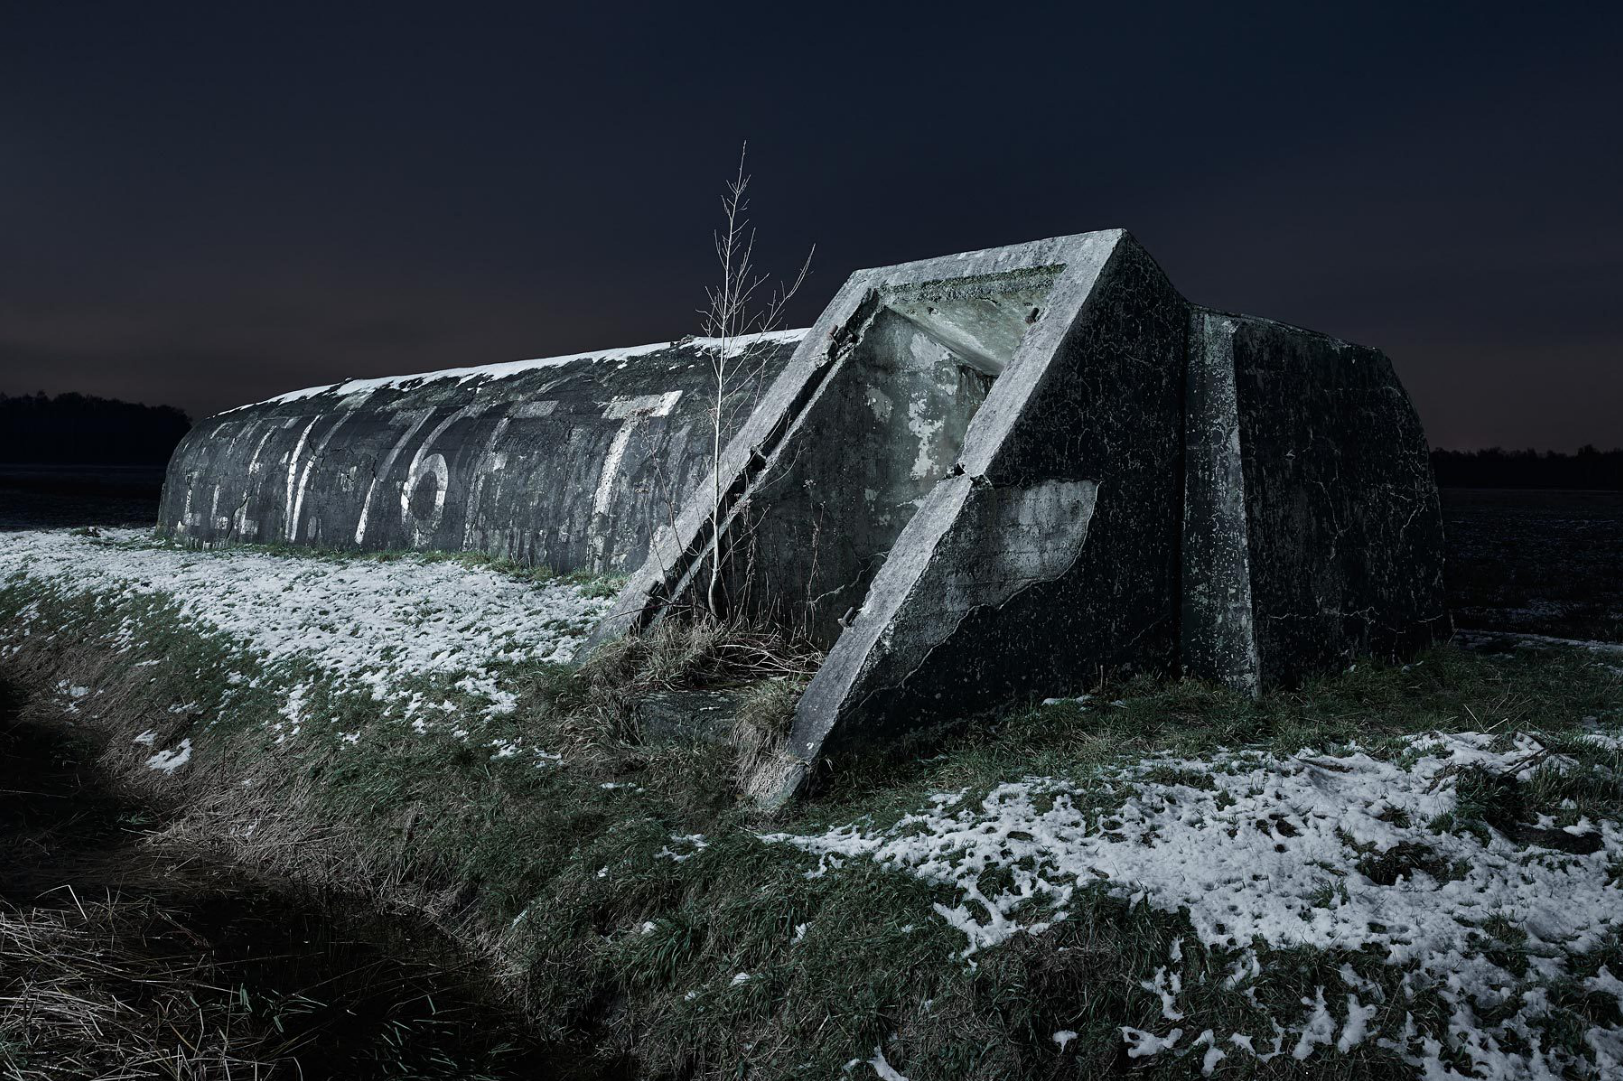 Abandoned World War II Bunkers Provide a Haunting Look Into the Past